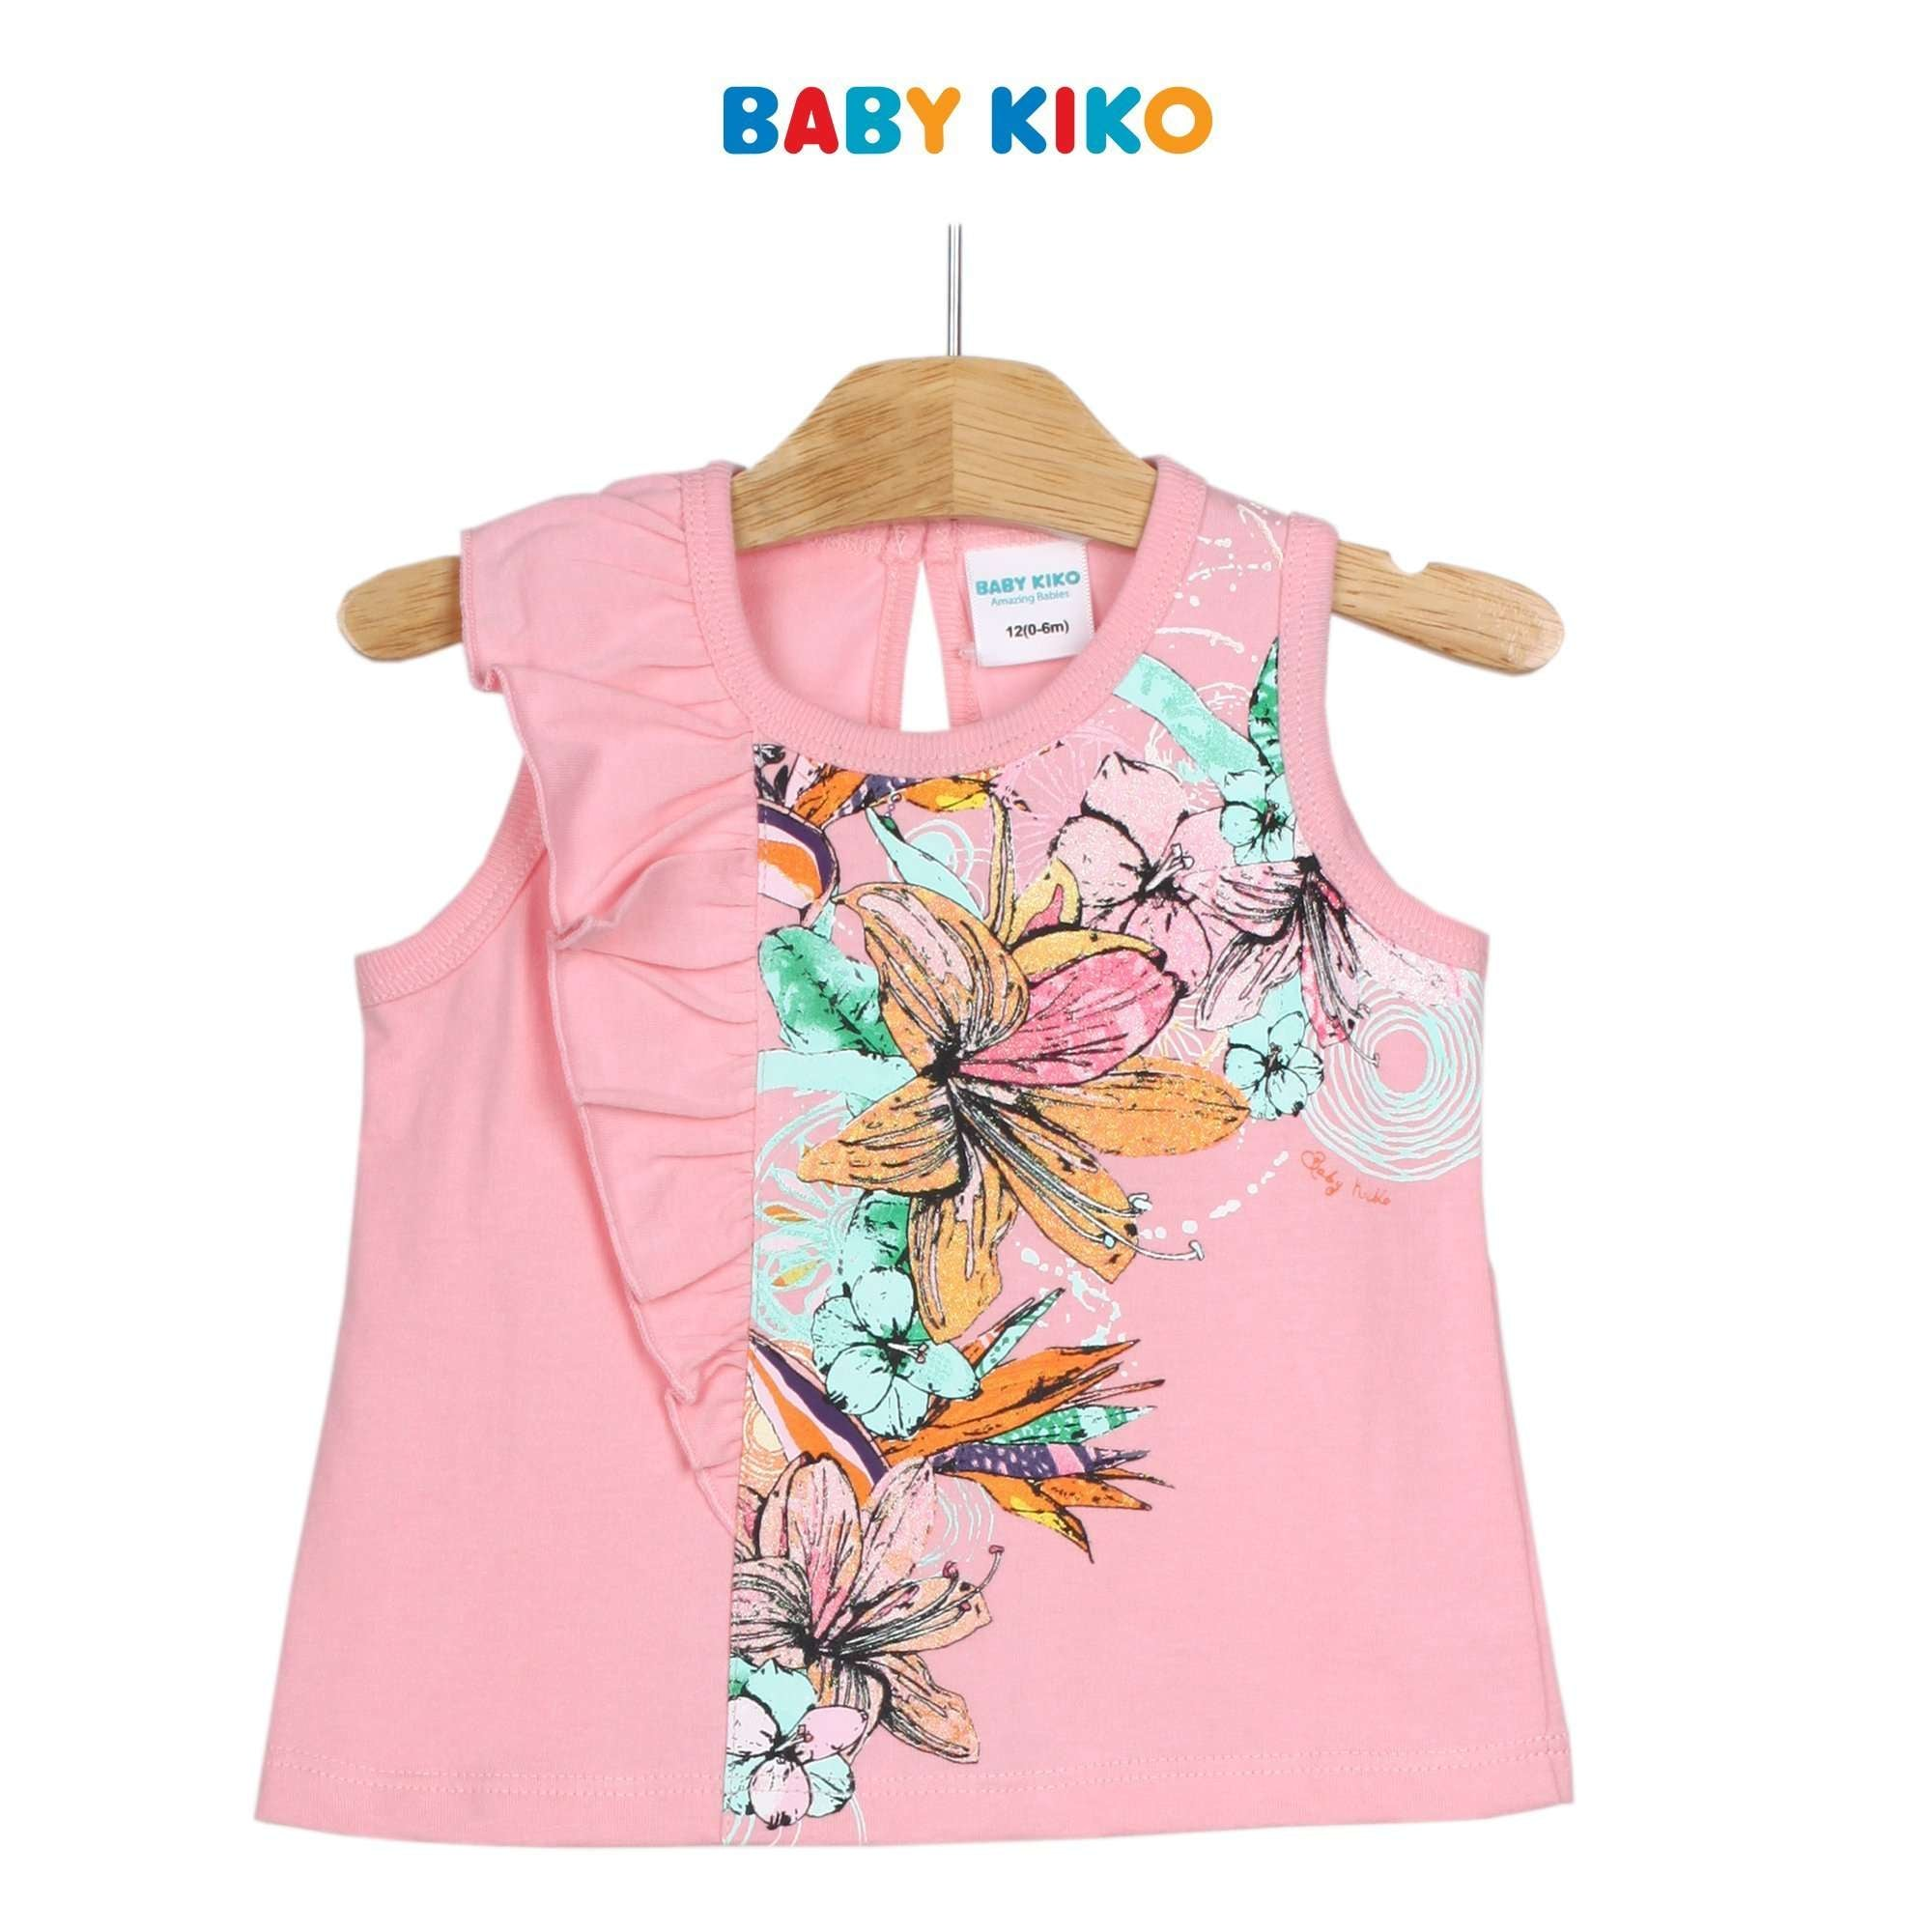 Baby KIKO Baby Girl Sleeveless Tee 330075-101 : Buy Baby KIKO online at CMG.MY